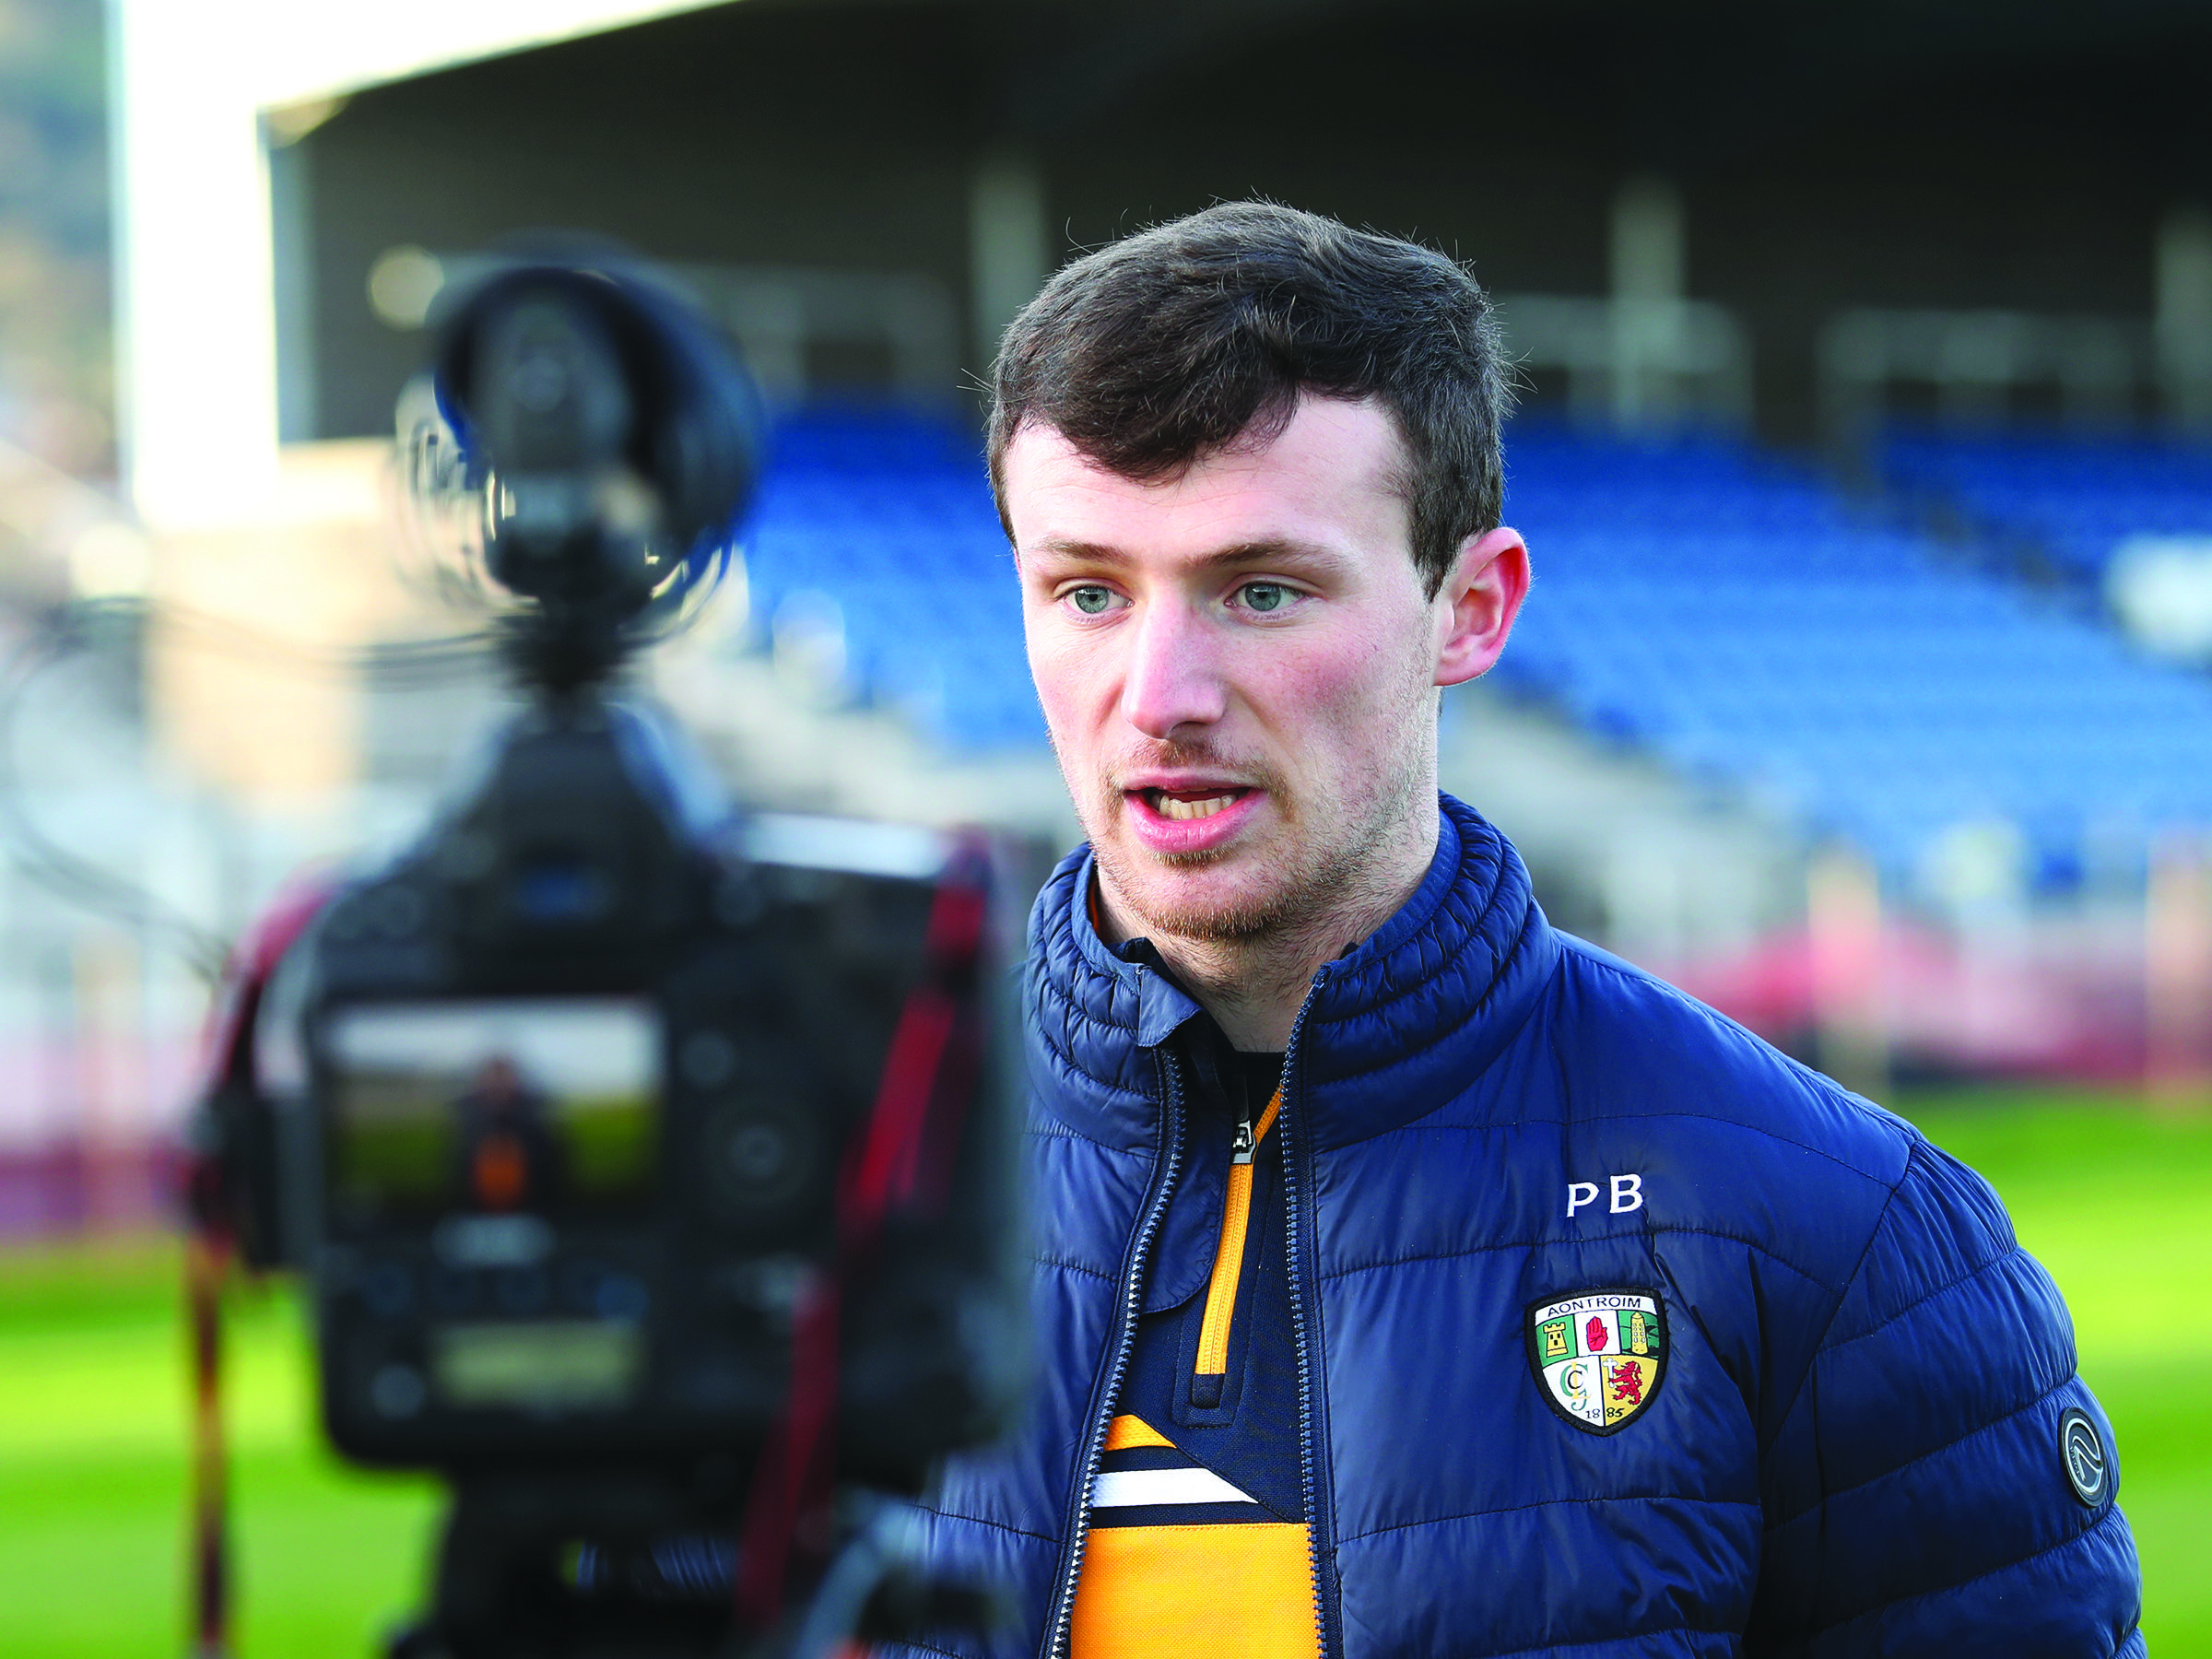 Paddy Burke has been in excellent form this year and he believes it's the strength of Antrim's panel that has ensured all players have been keen to perform to hold onto their starting positions